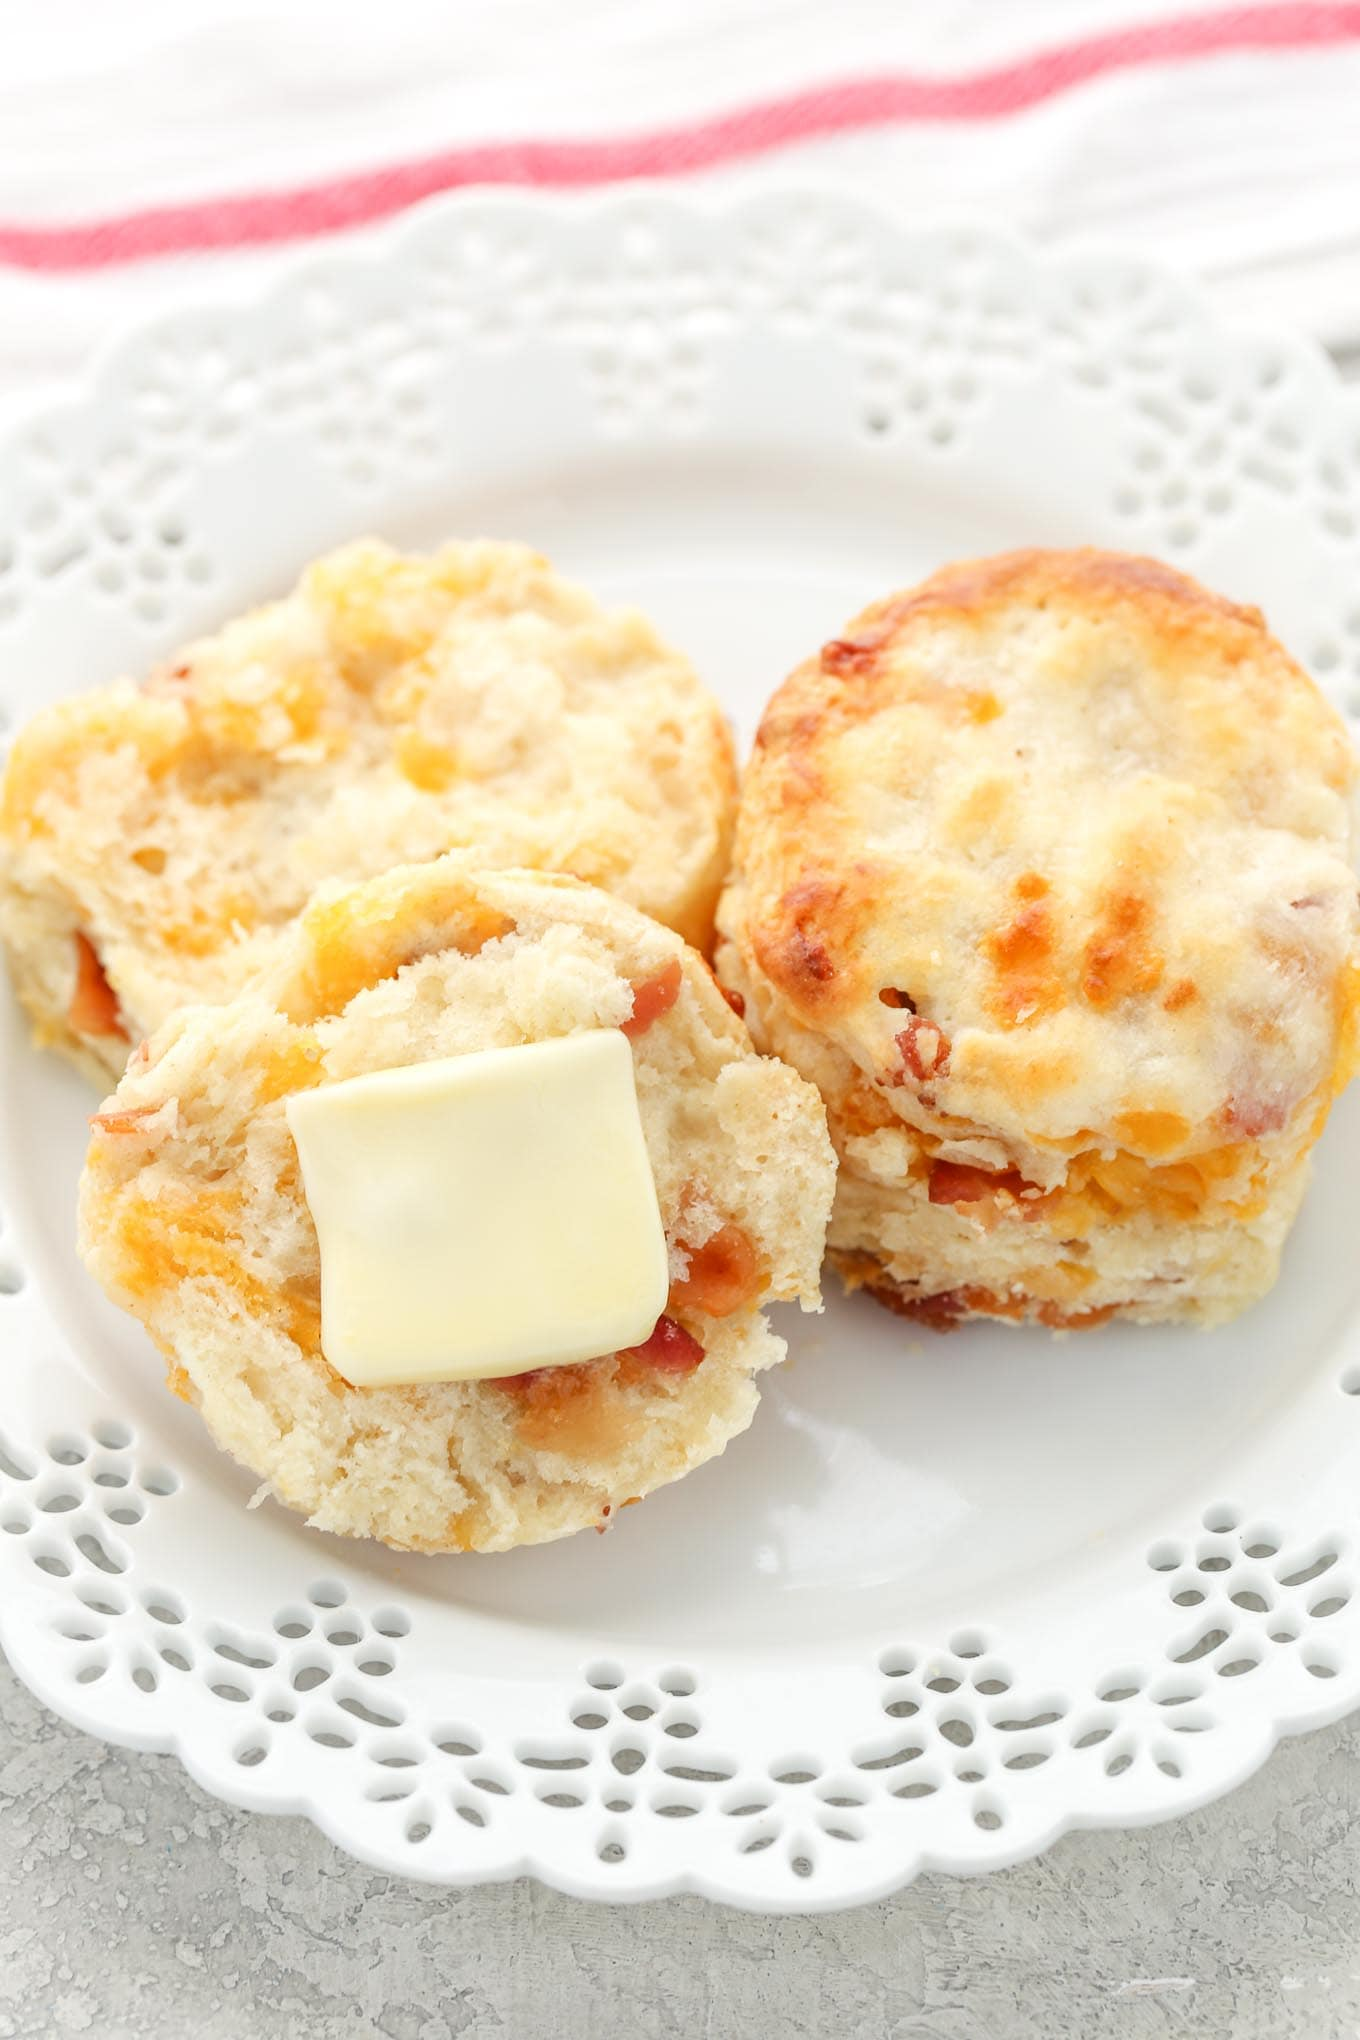 Two bacon cheddar biscuits on a white plate. One biscuit is cut in half and has a pat of butter on it.